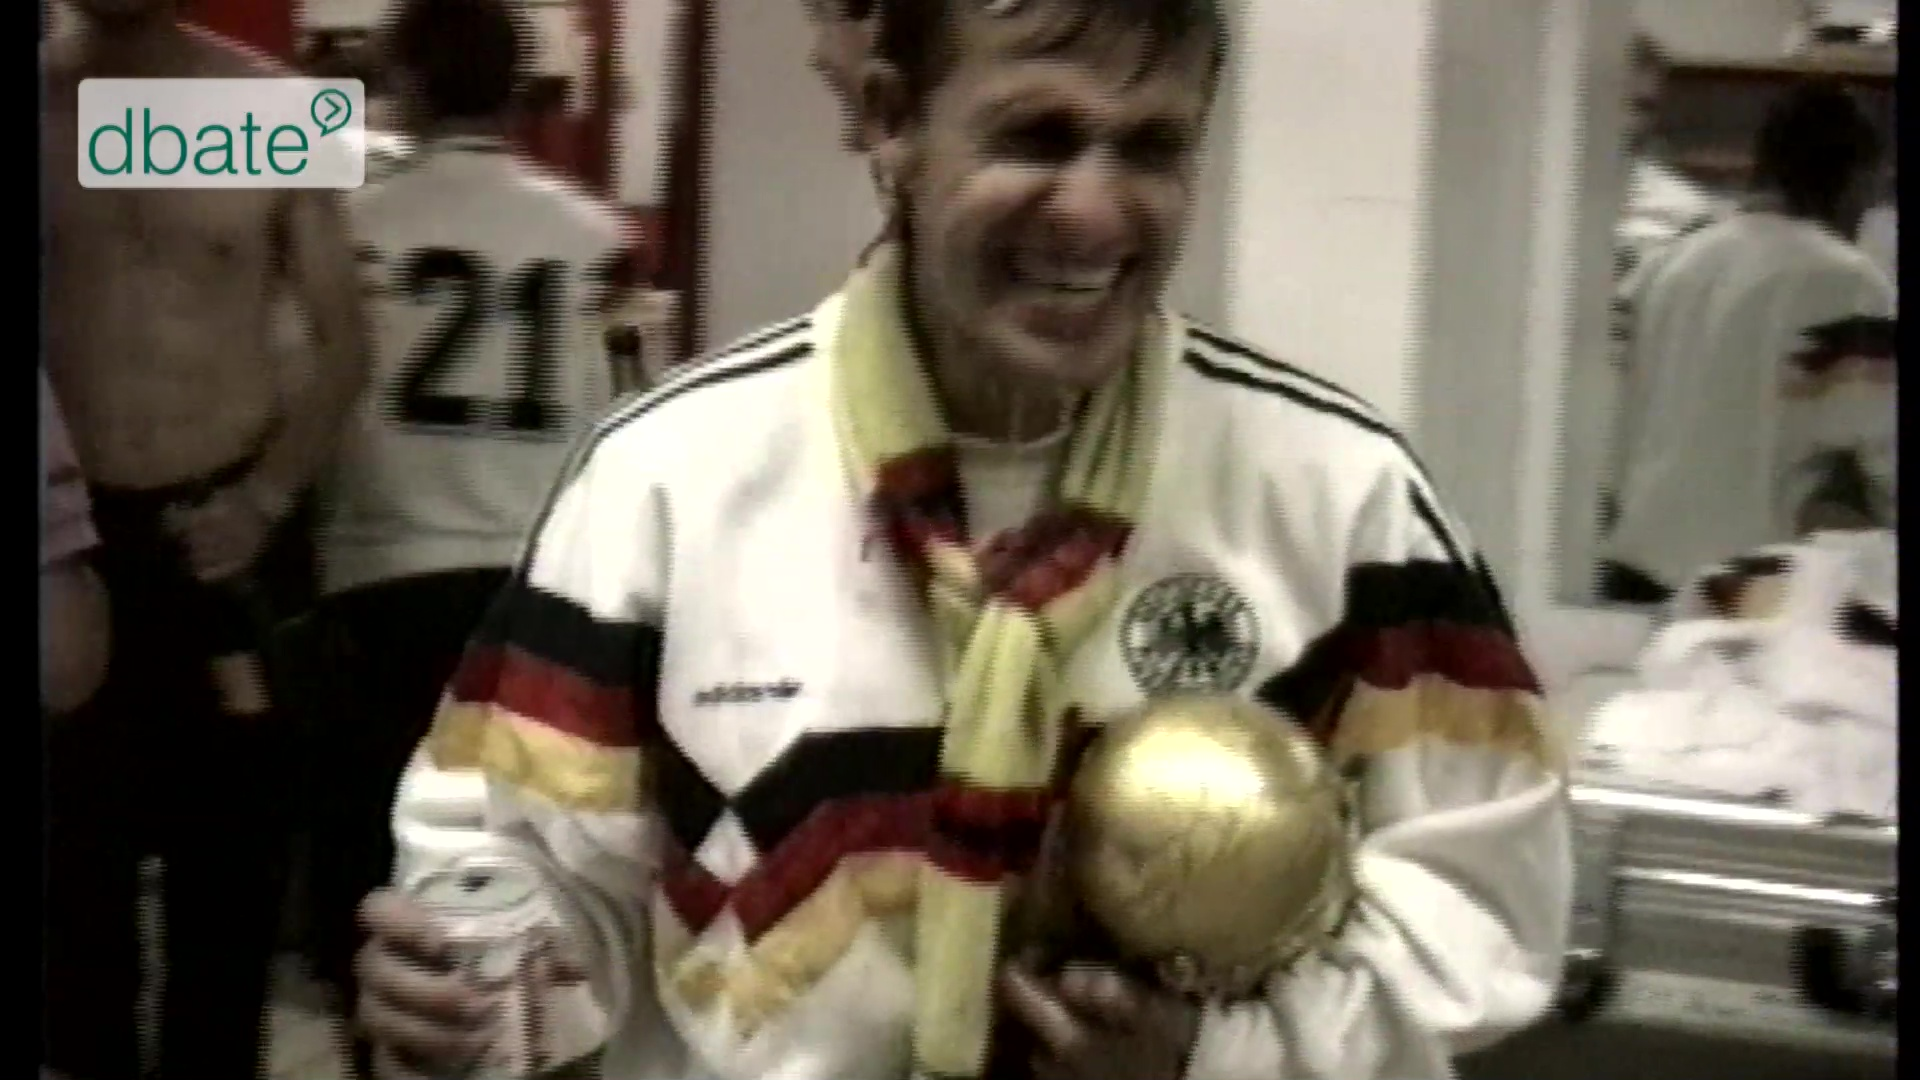 Party in der Kabine nach dem WM-Finale 1990.